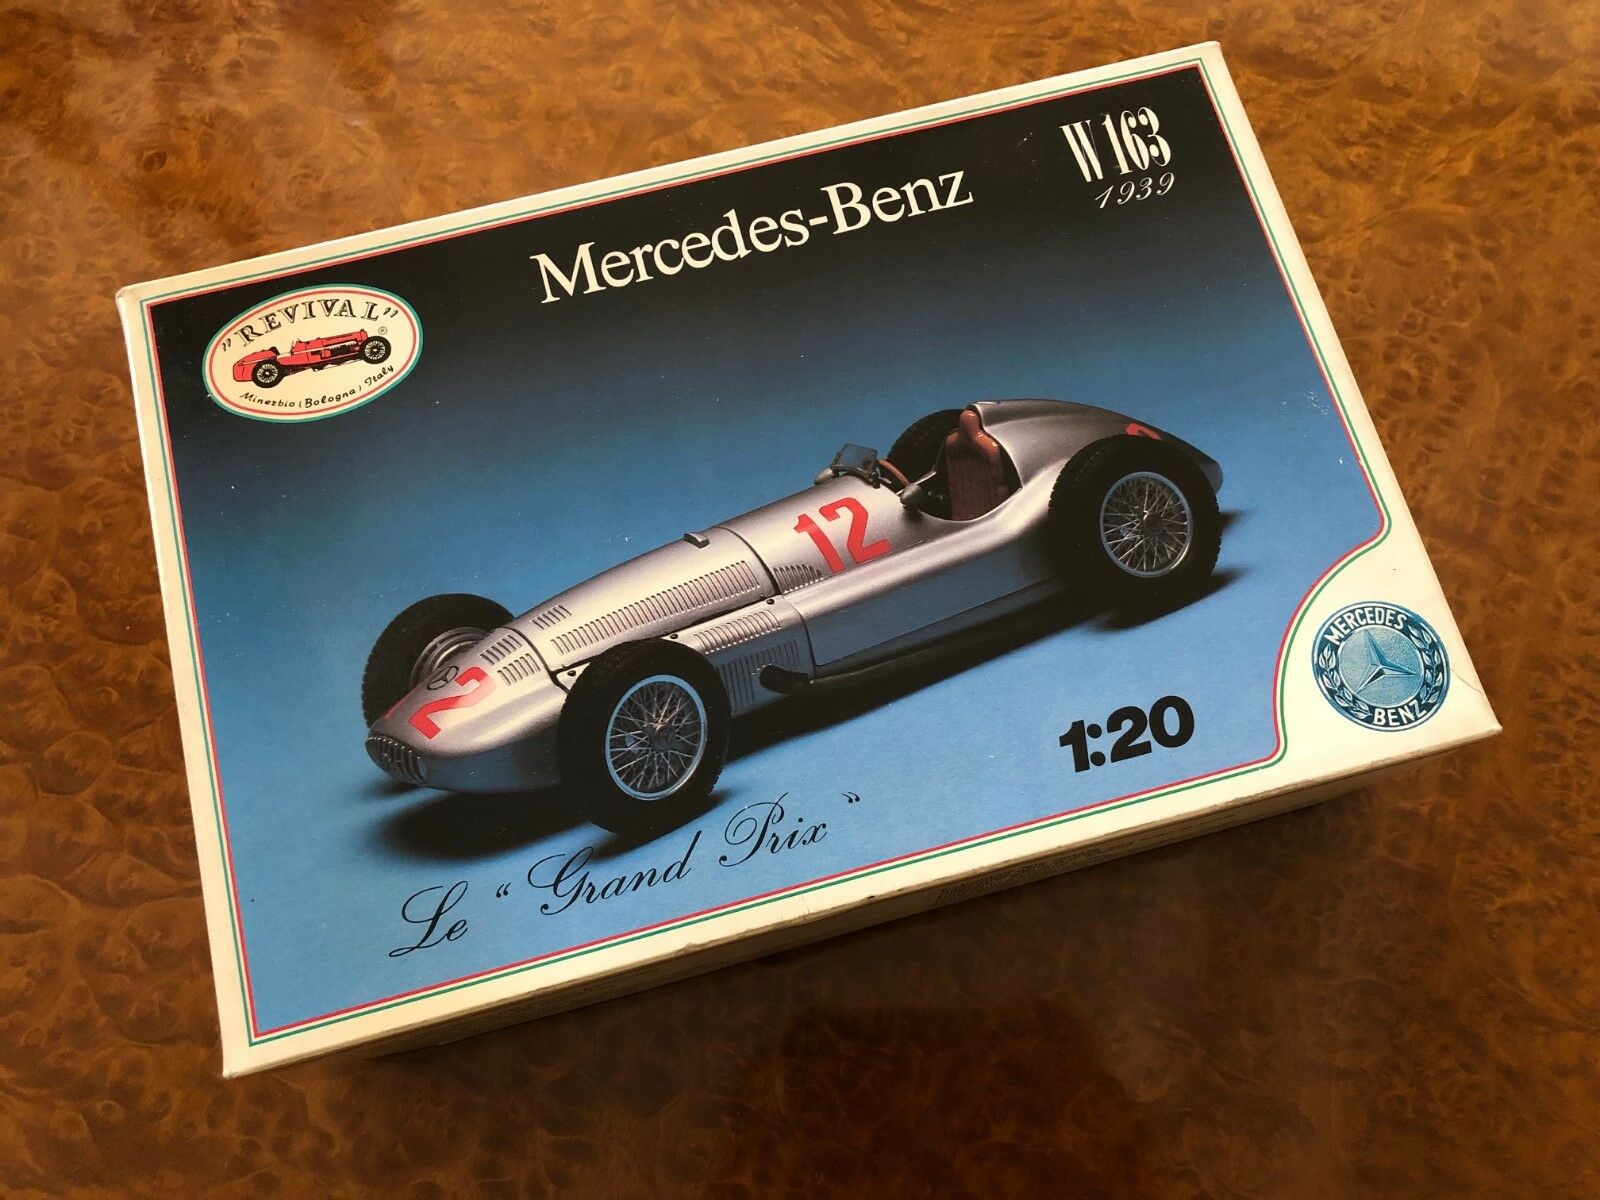 Vintage Revival F1 Kit 1 20 1939 Mercedes-Benz W163 Grand Prix